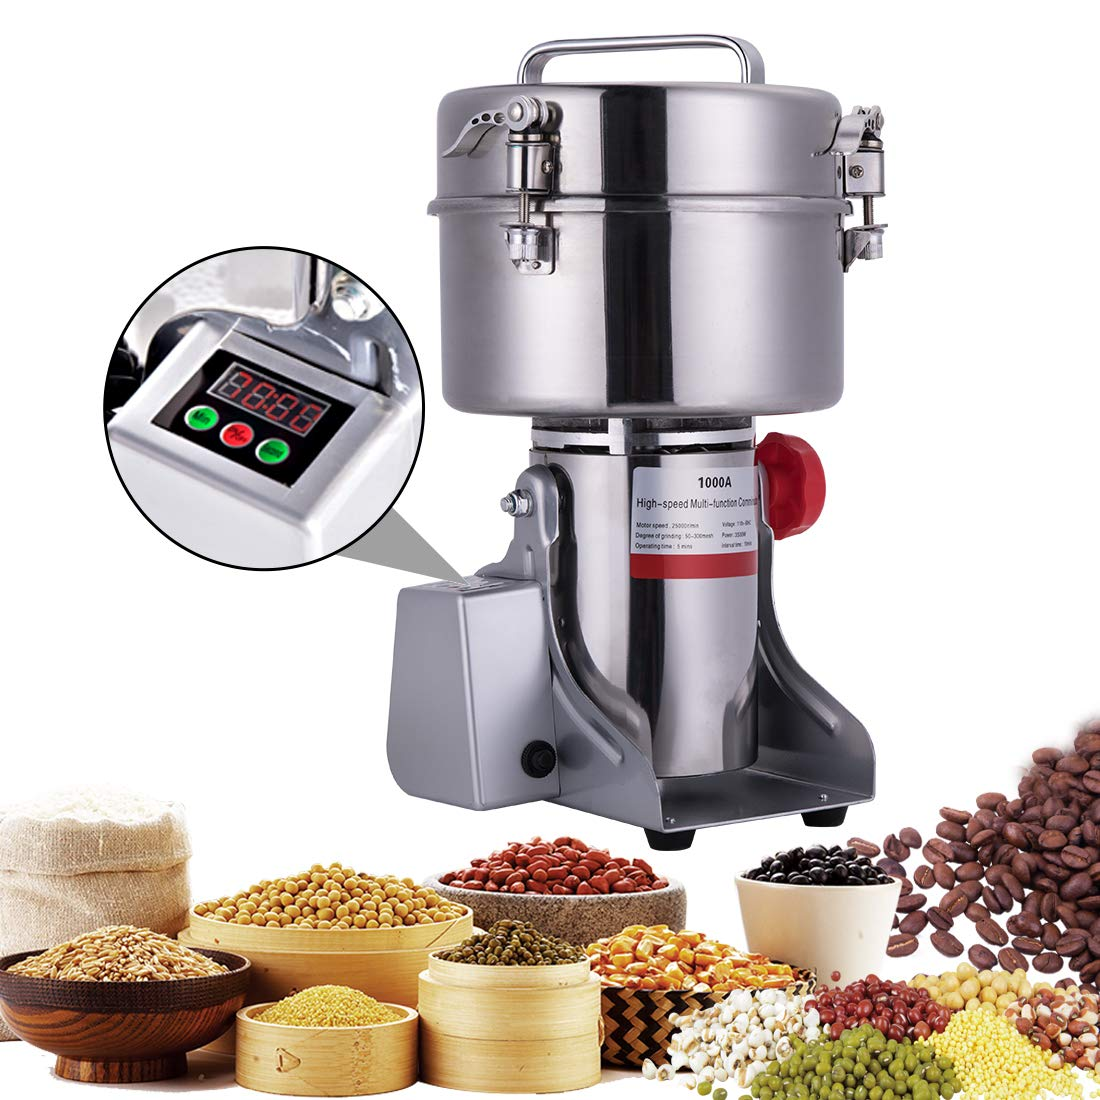 BI-DTOOL 1000G Electric Grain Grinder Stainless Steel Pulverizer Grinding Machine Commercial Cereals Grain Mill for Kitchen Herb Spice Pepper Coffee with LCD Digital Display by BI-DTOOL